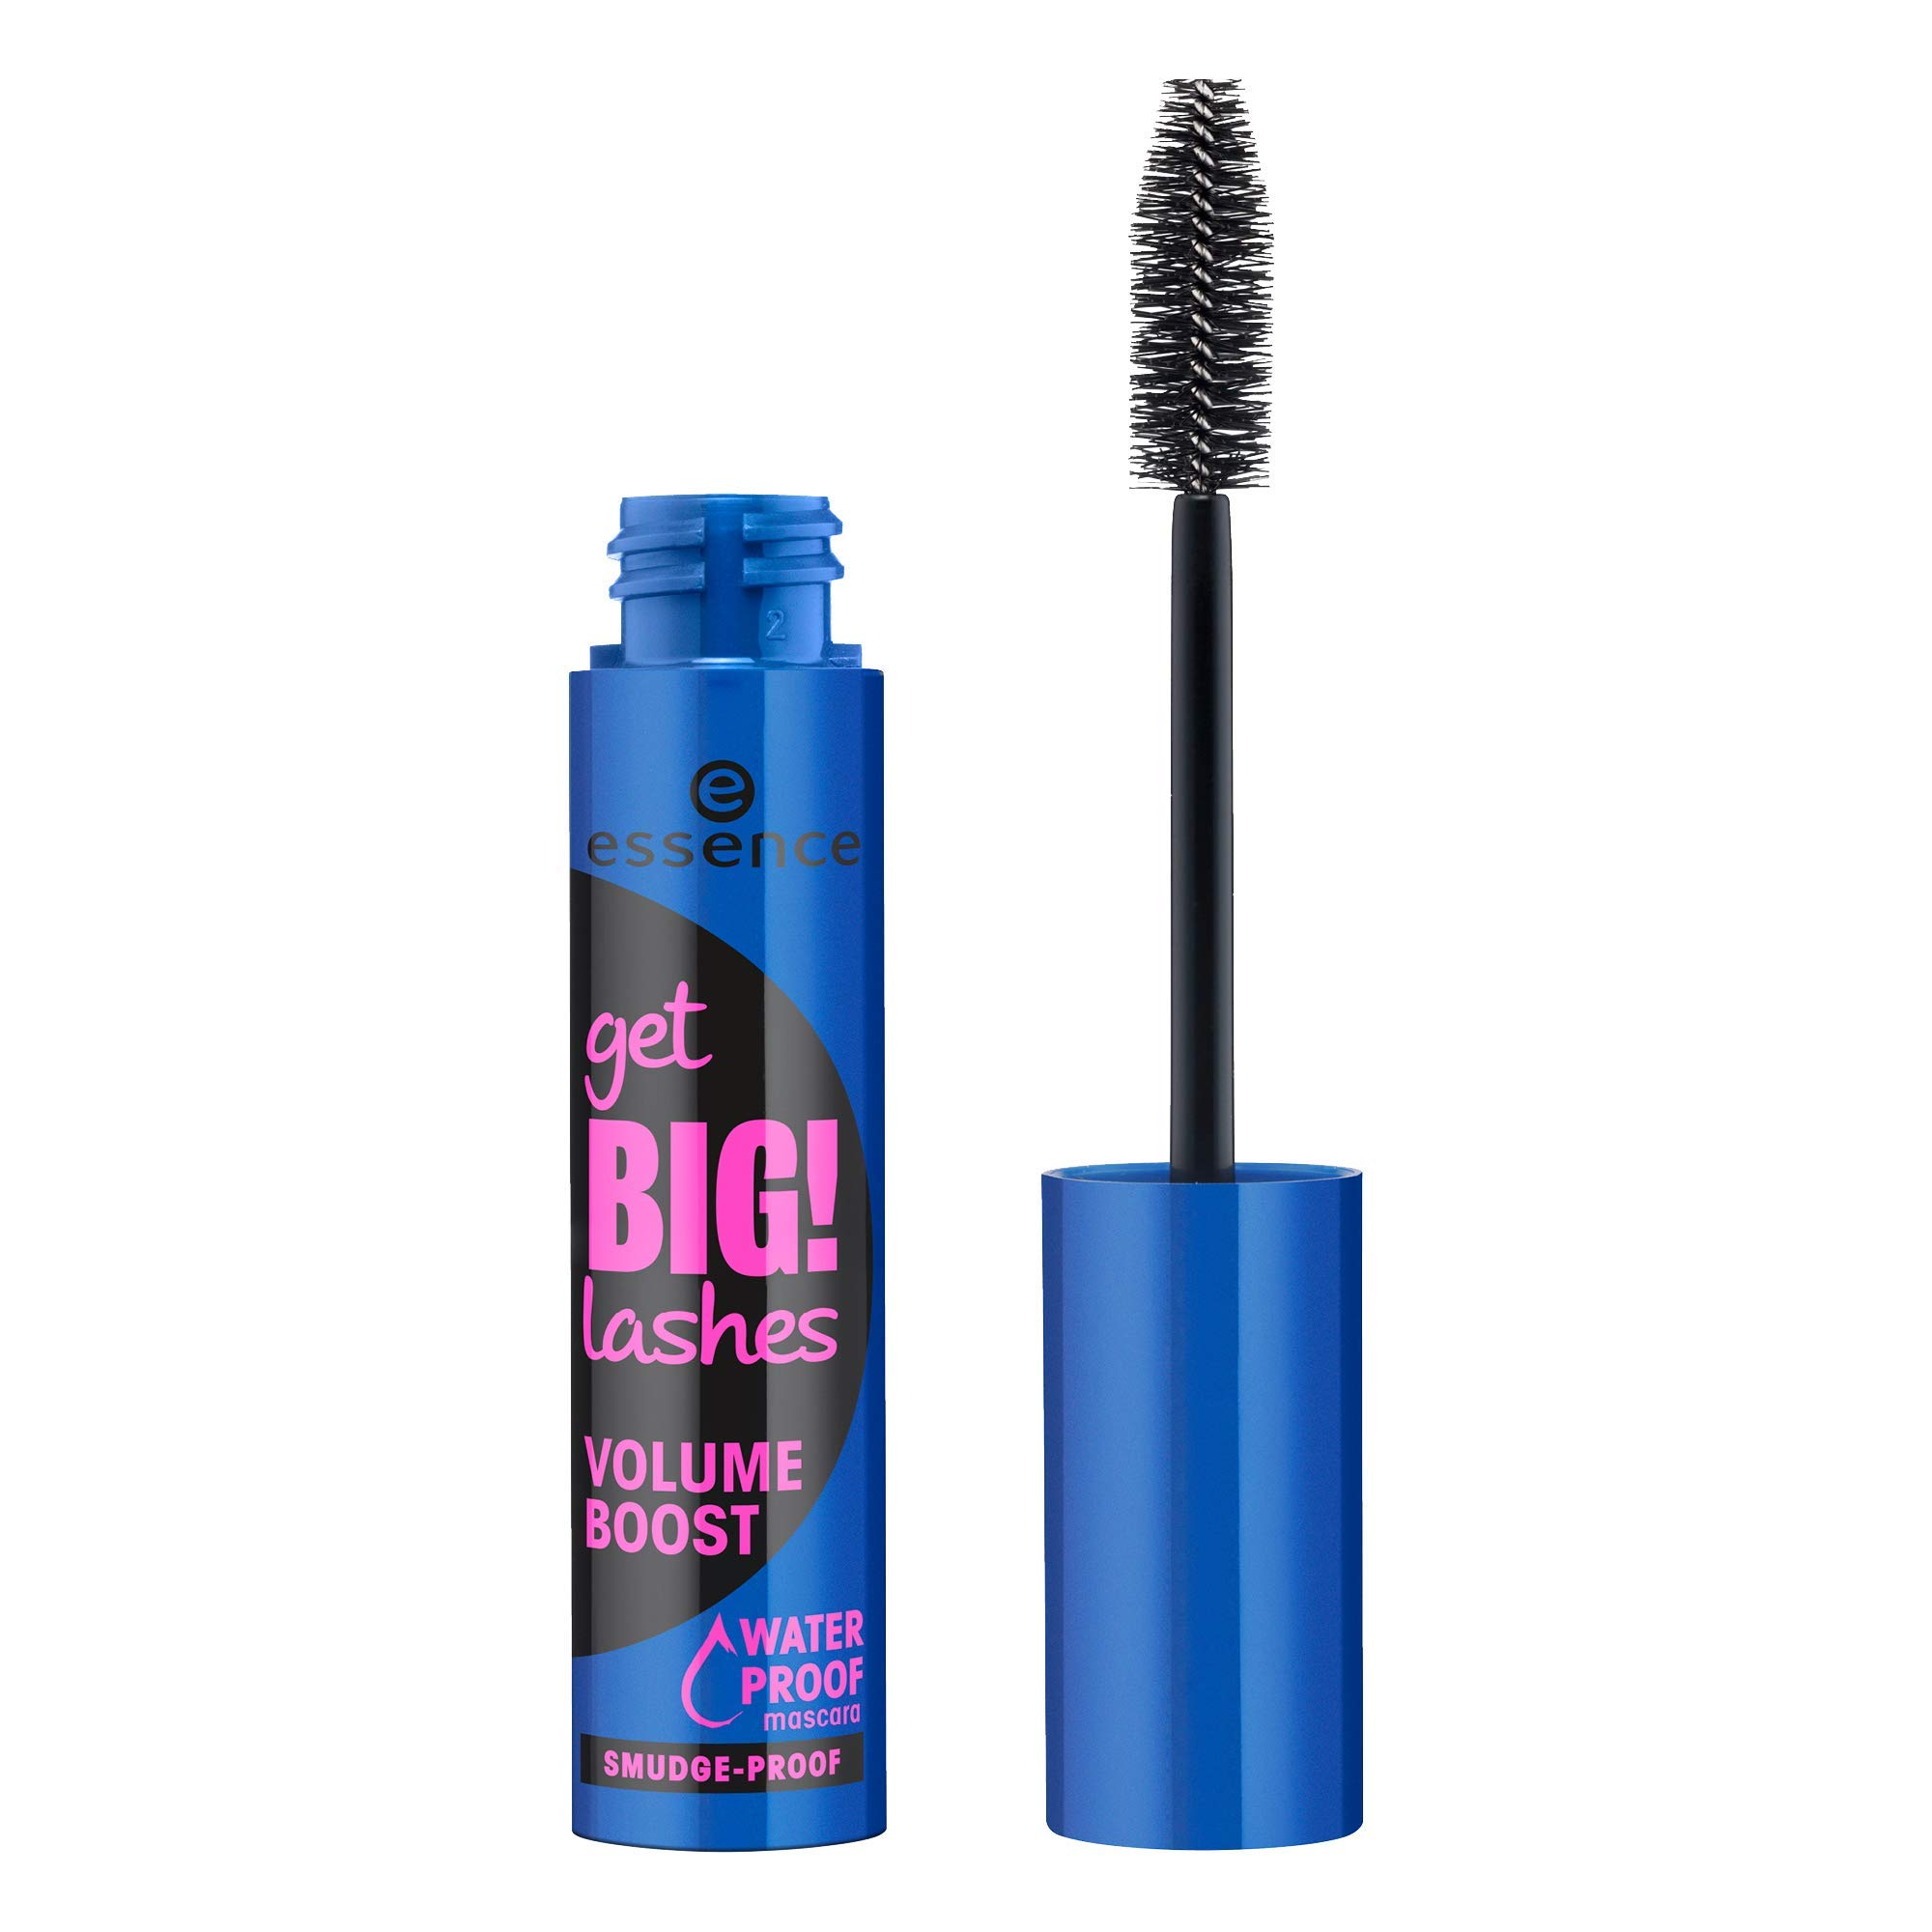 essence   Get BIG! Lashes Volume Boost Waterproof Mascara   Opthalmologically Tested